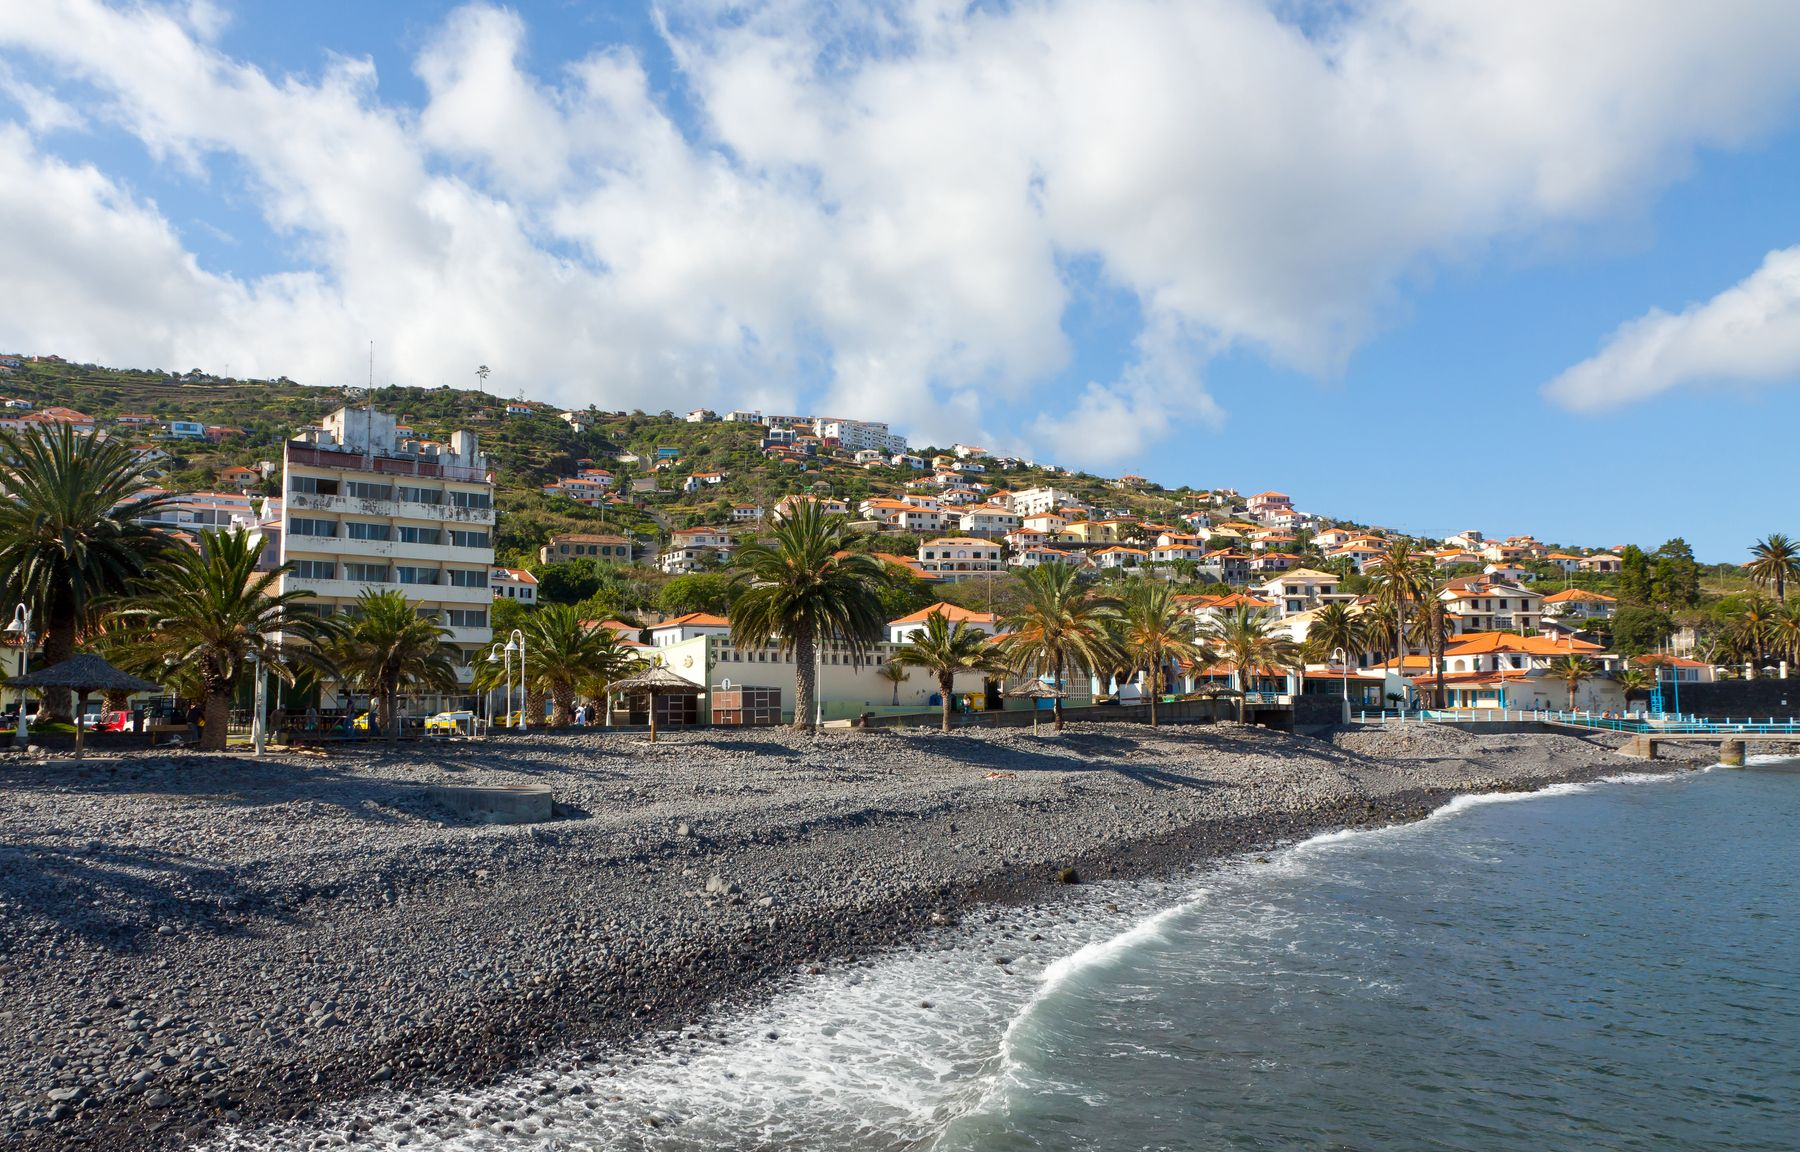 Black sand beach fringed with palm trees and houses in Madeira